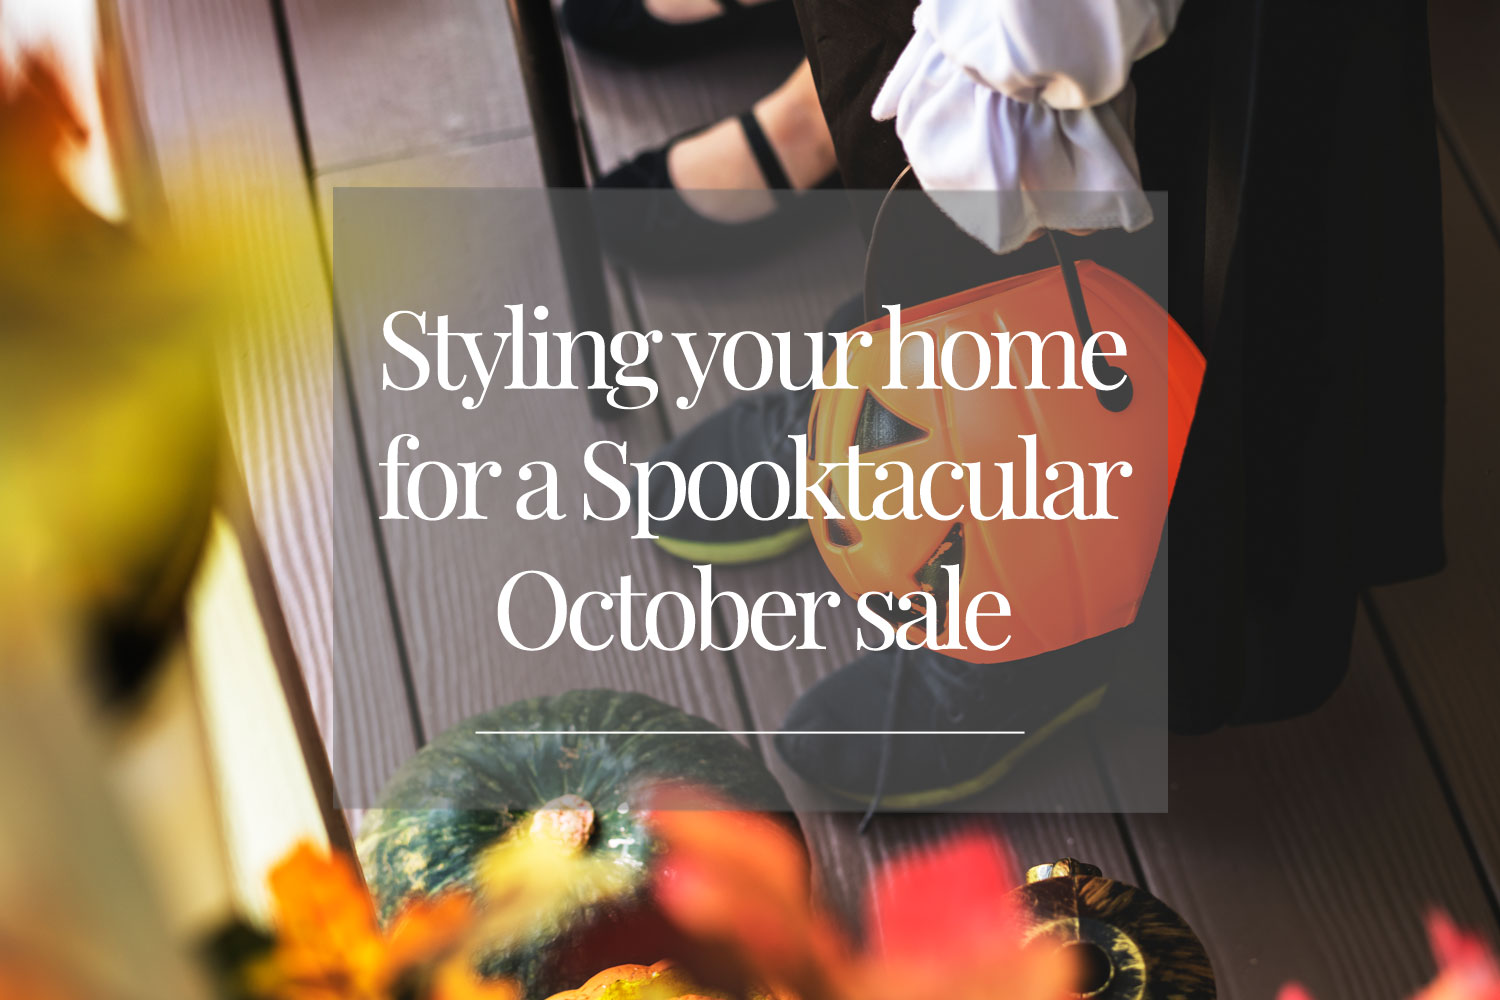 Styling-your-home-for-a-Spooktacular-October-sale